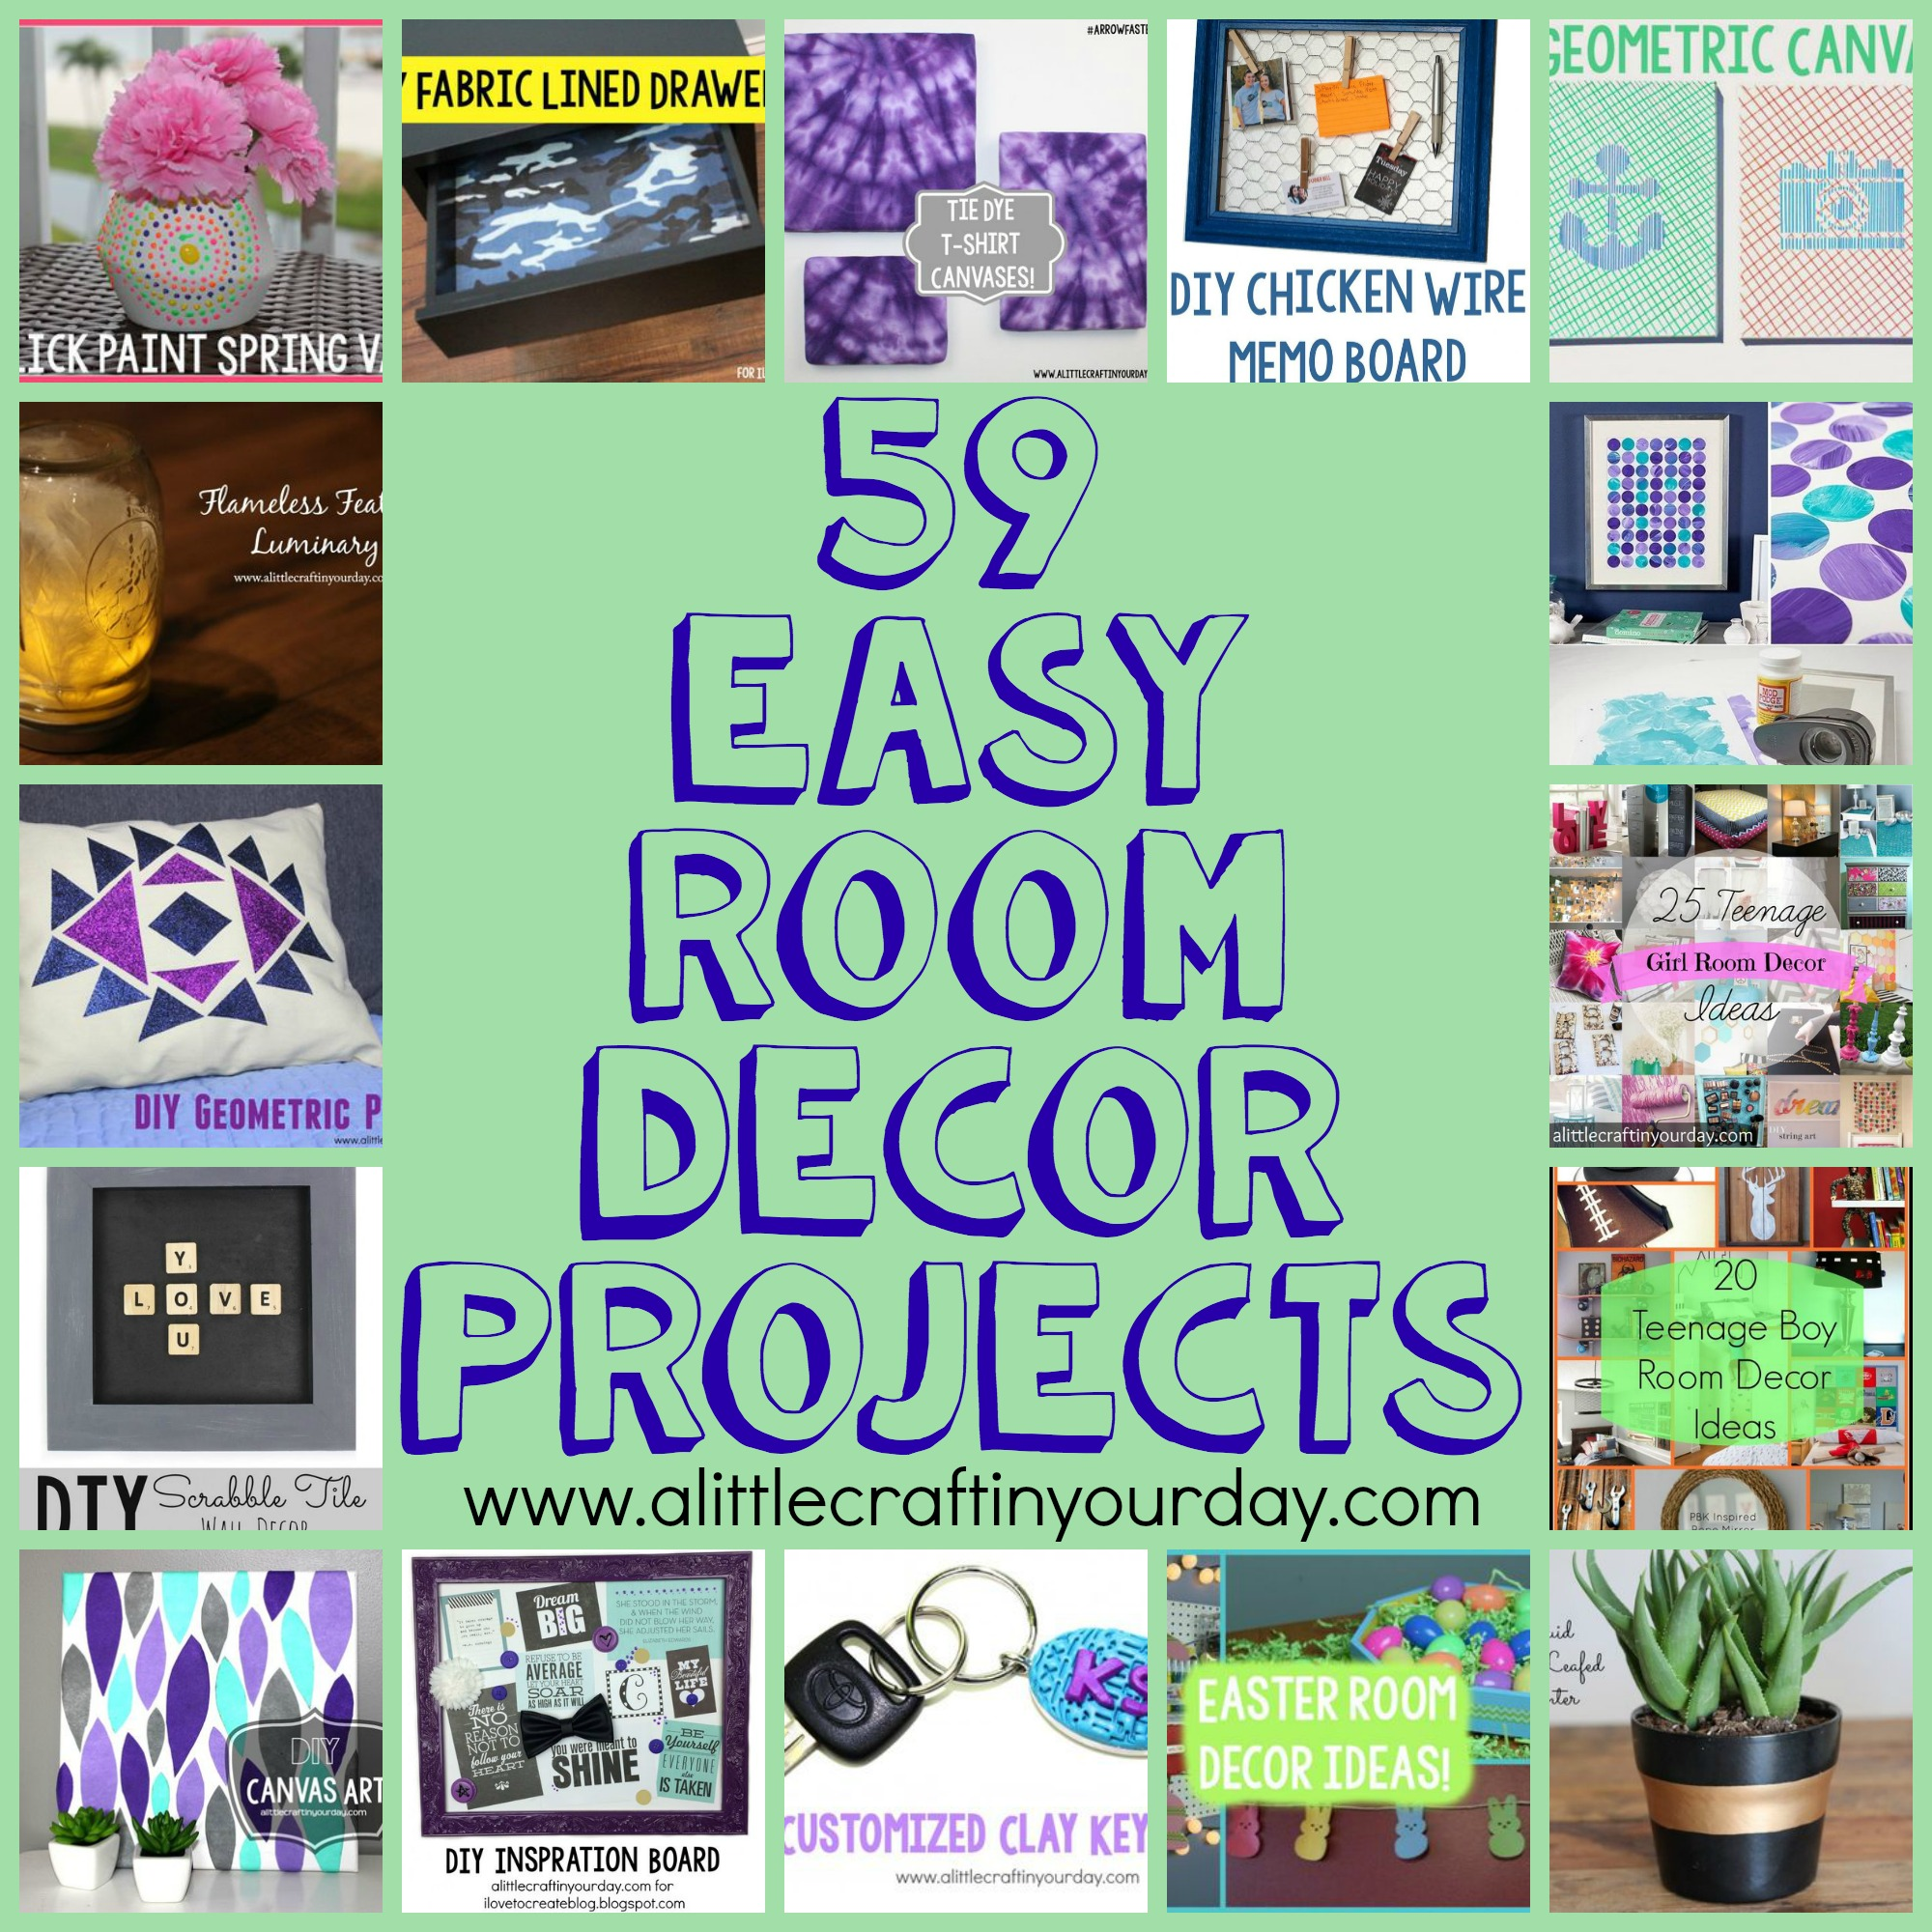 Comely Your Day Diy Spring Decor Your Room Your Room Diy Halloween Decor Easy Diy Room Decor Projects Easy Diy Room Decor Projects A Little Craft home decor Diy Decor For Your Room